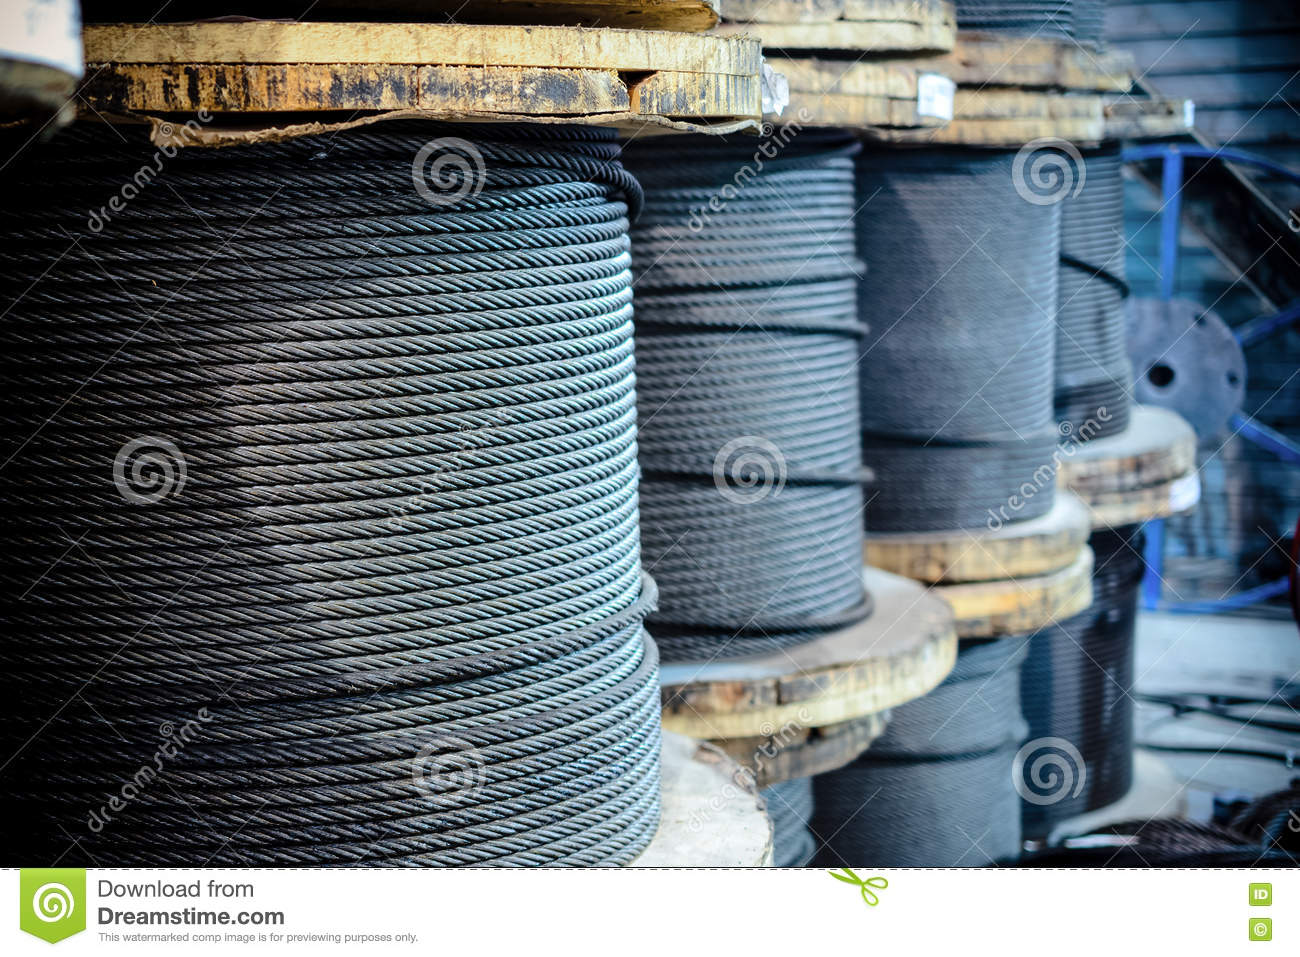 Large cable reels stocked in the factory premises.